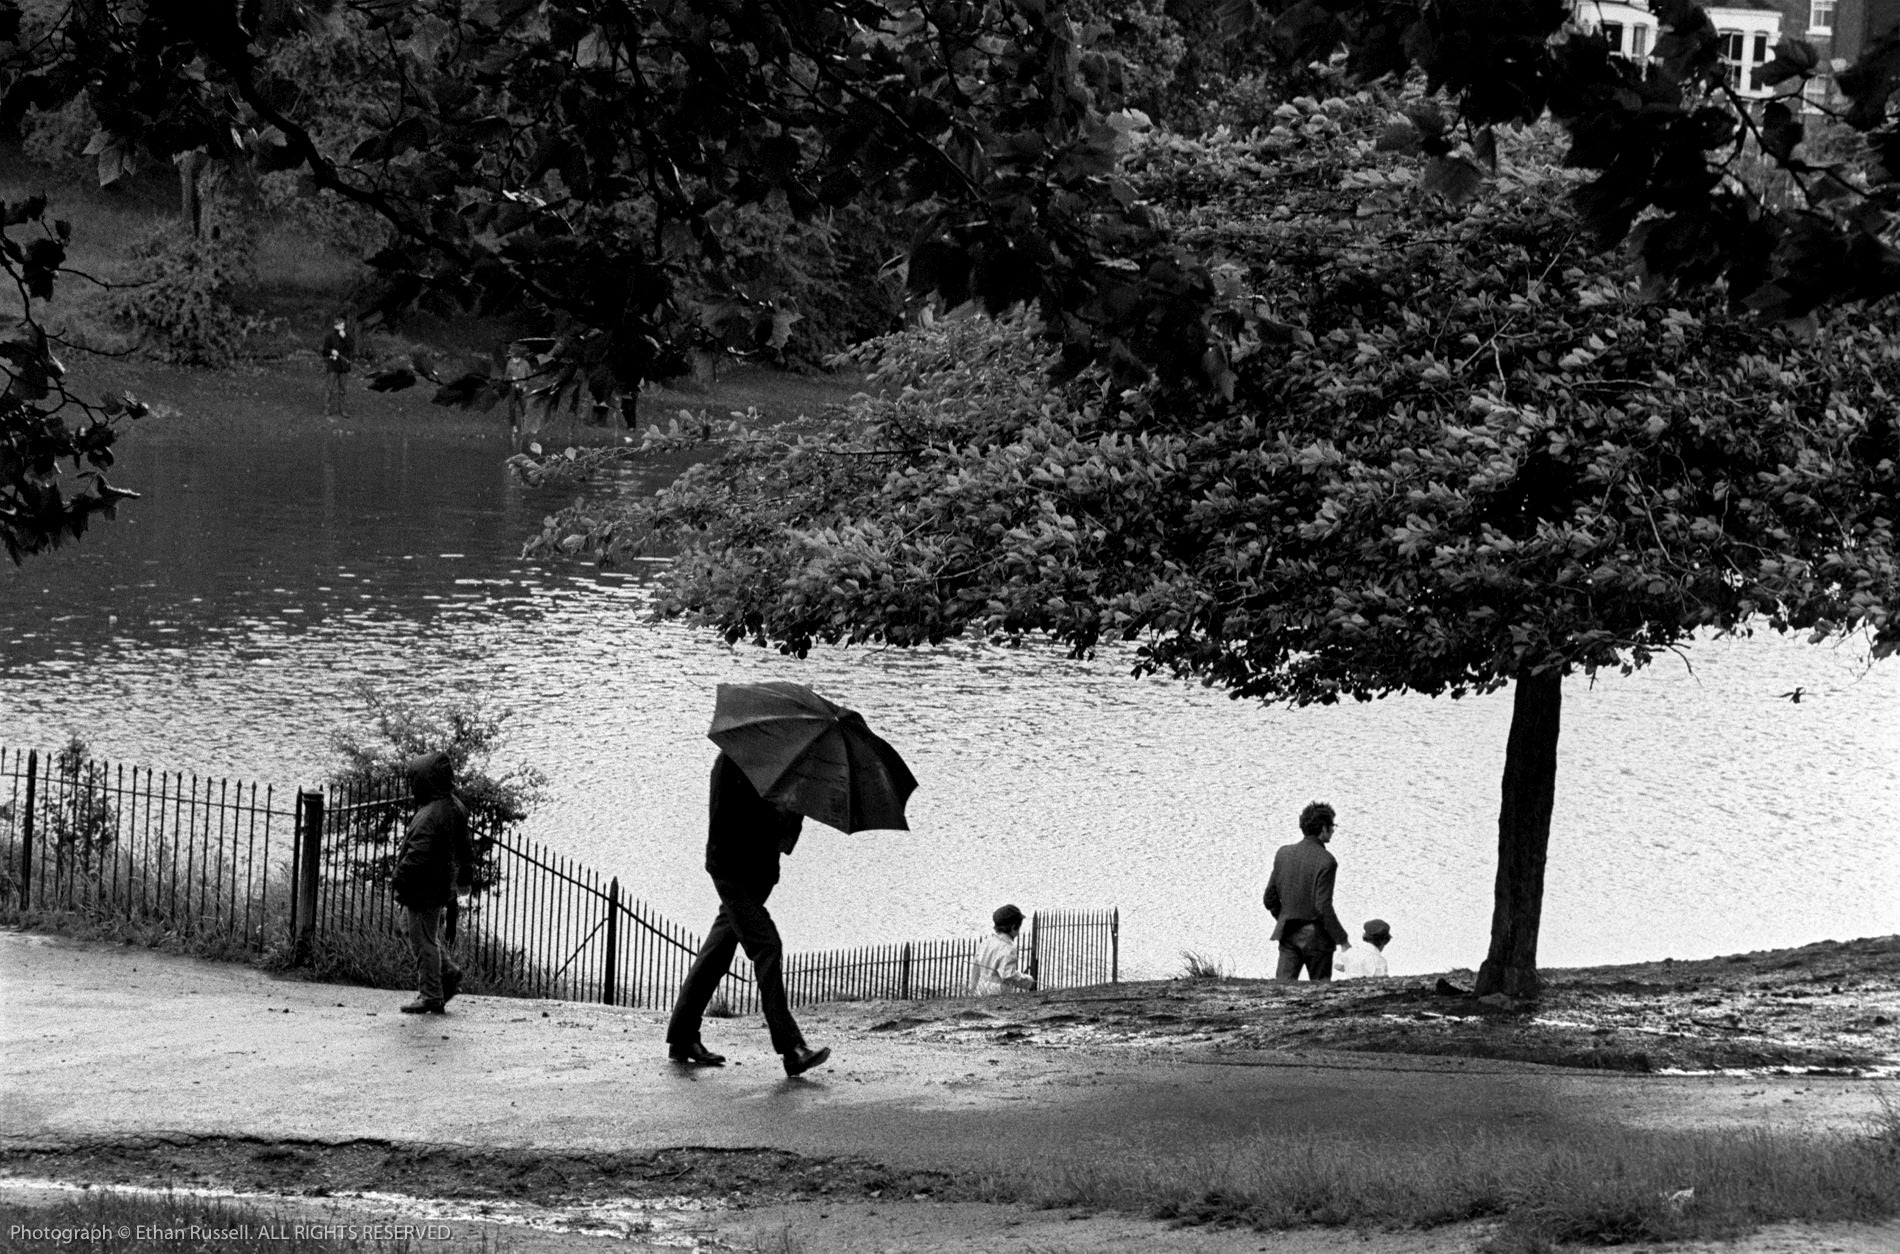 By the Serpentine, London's Hyde Park 1967